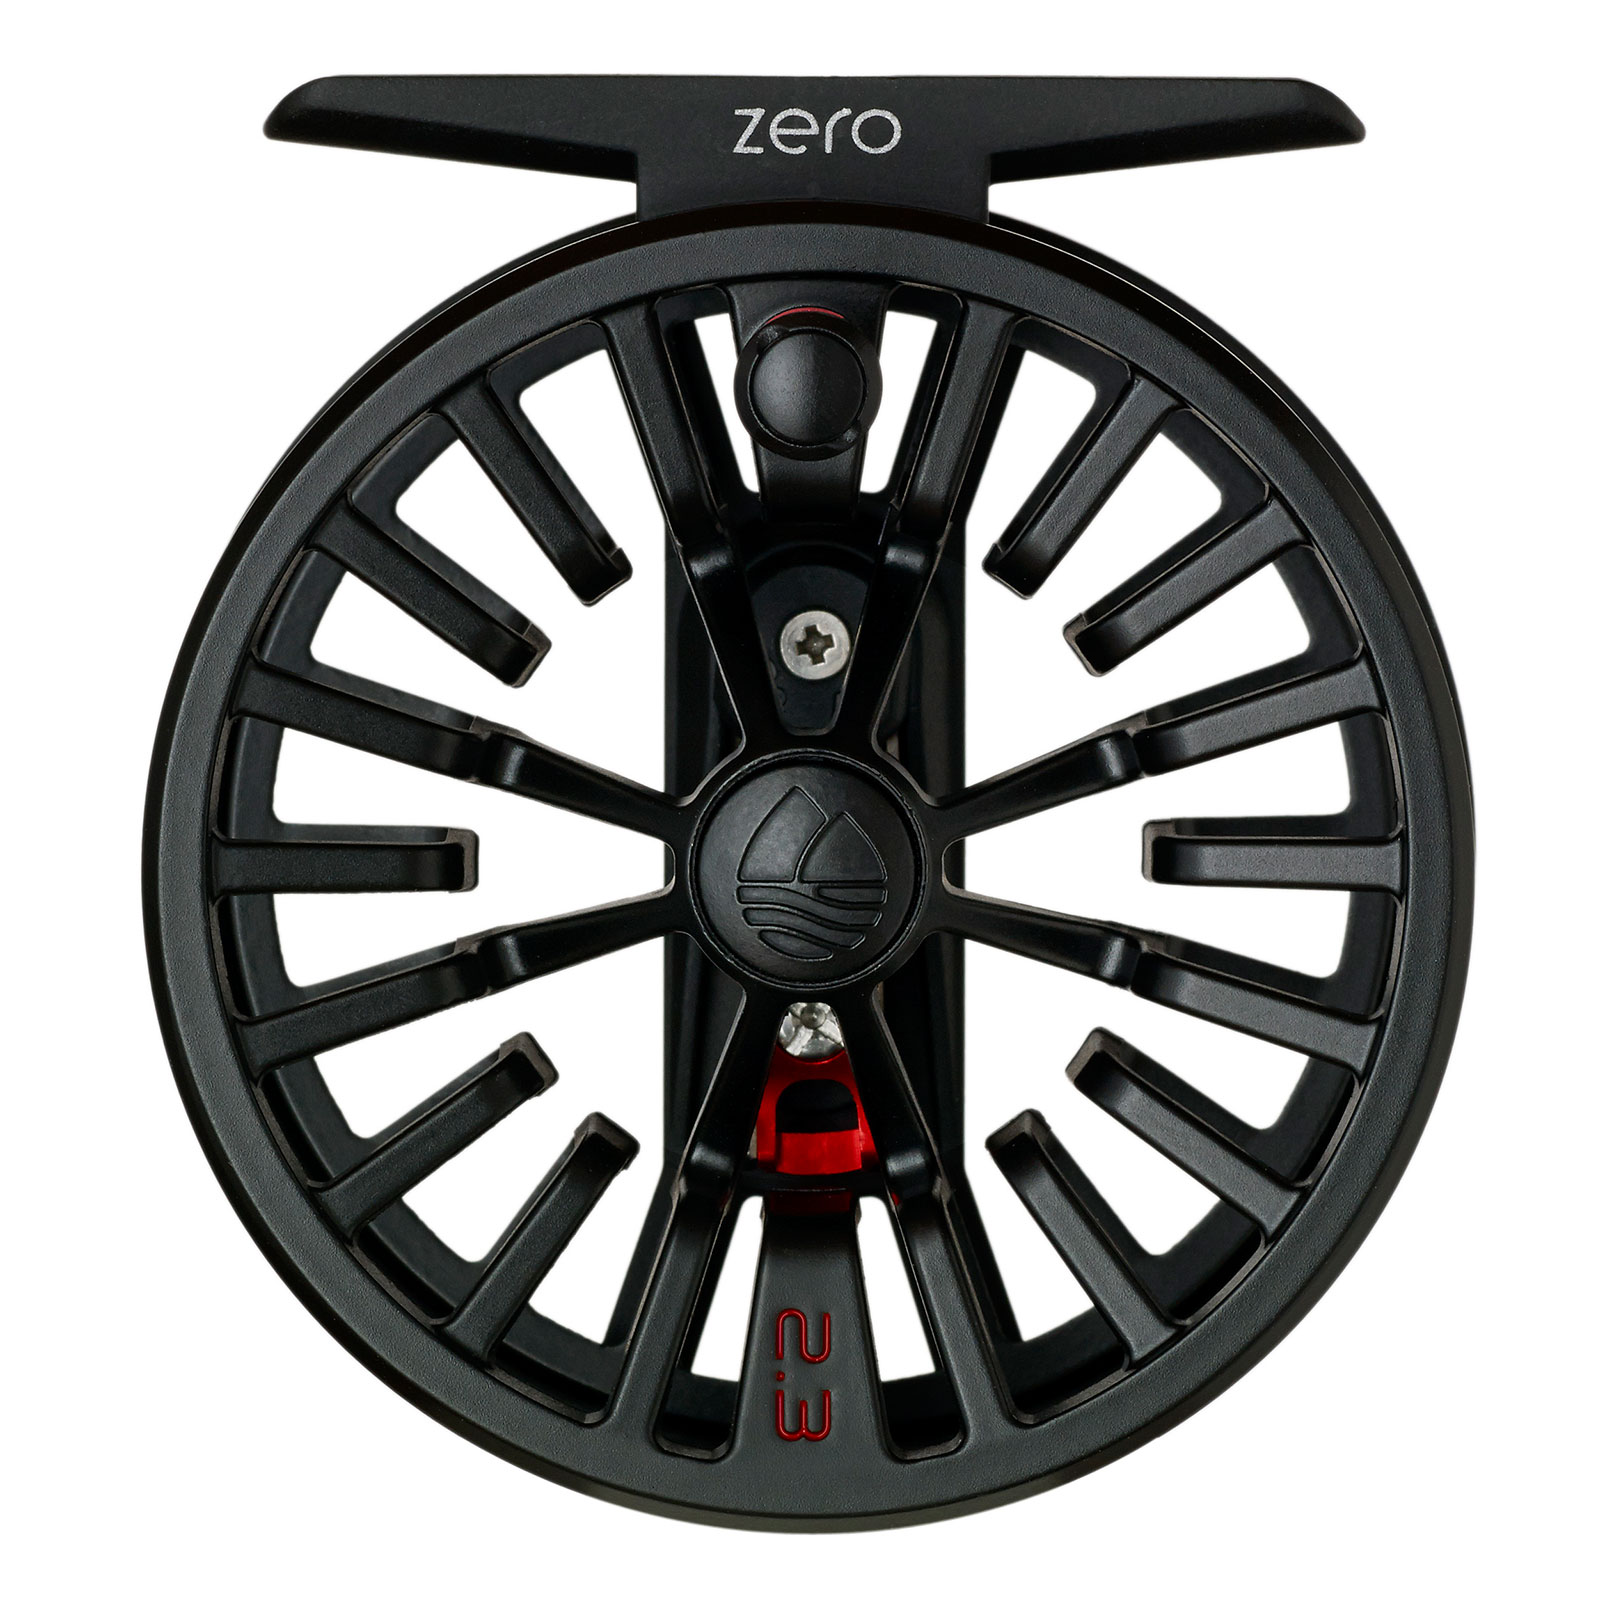 Redington-Zero-Fly-Reel thumbnail 11